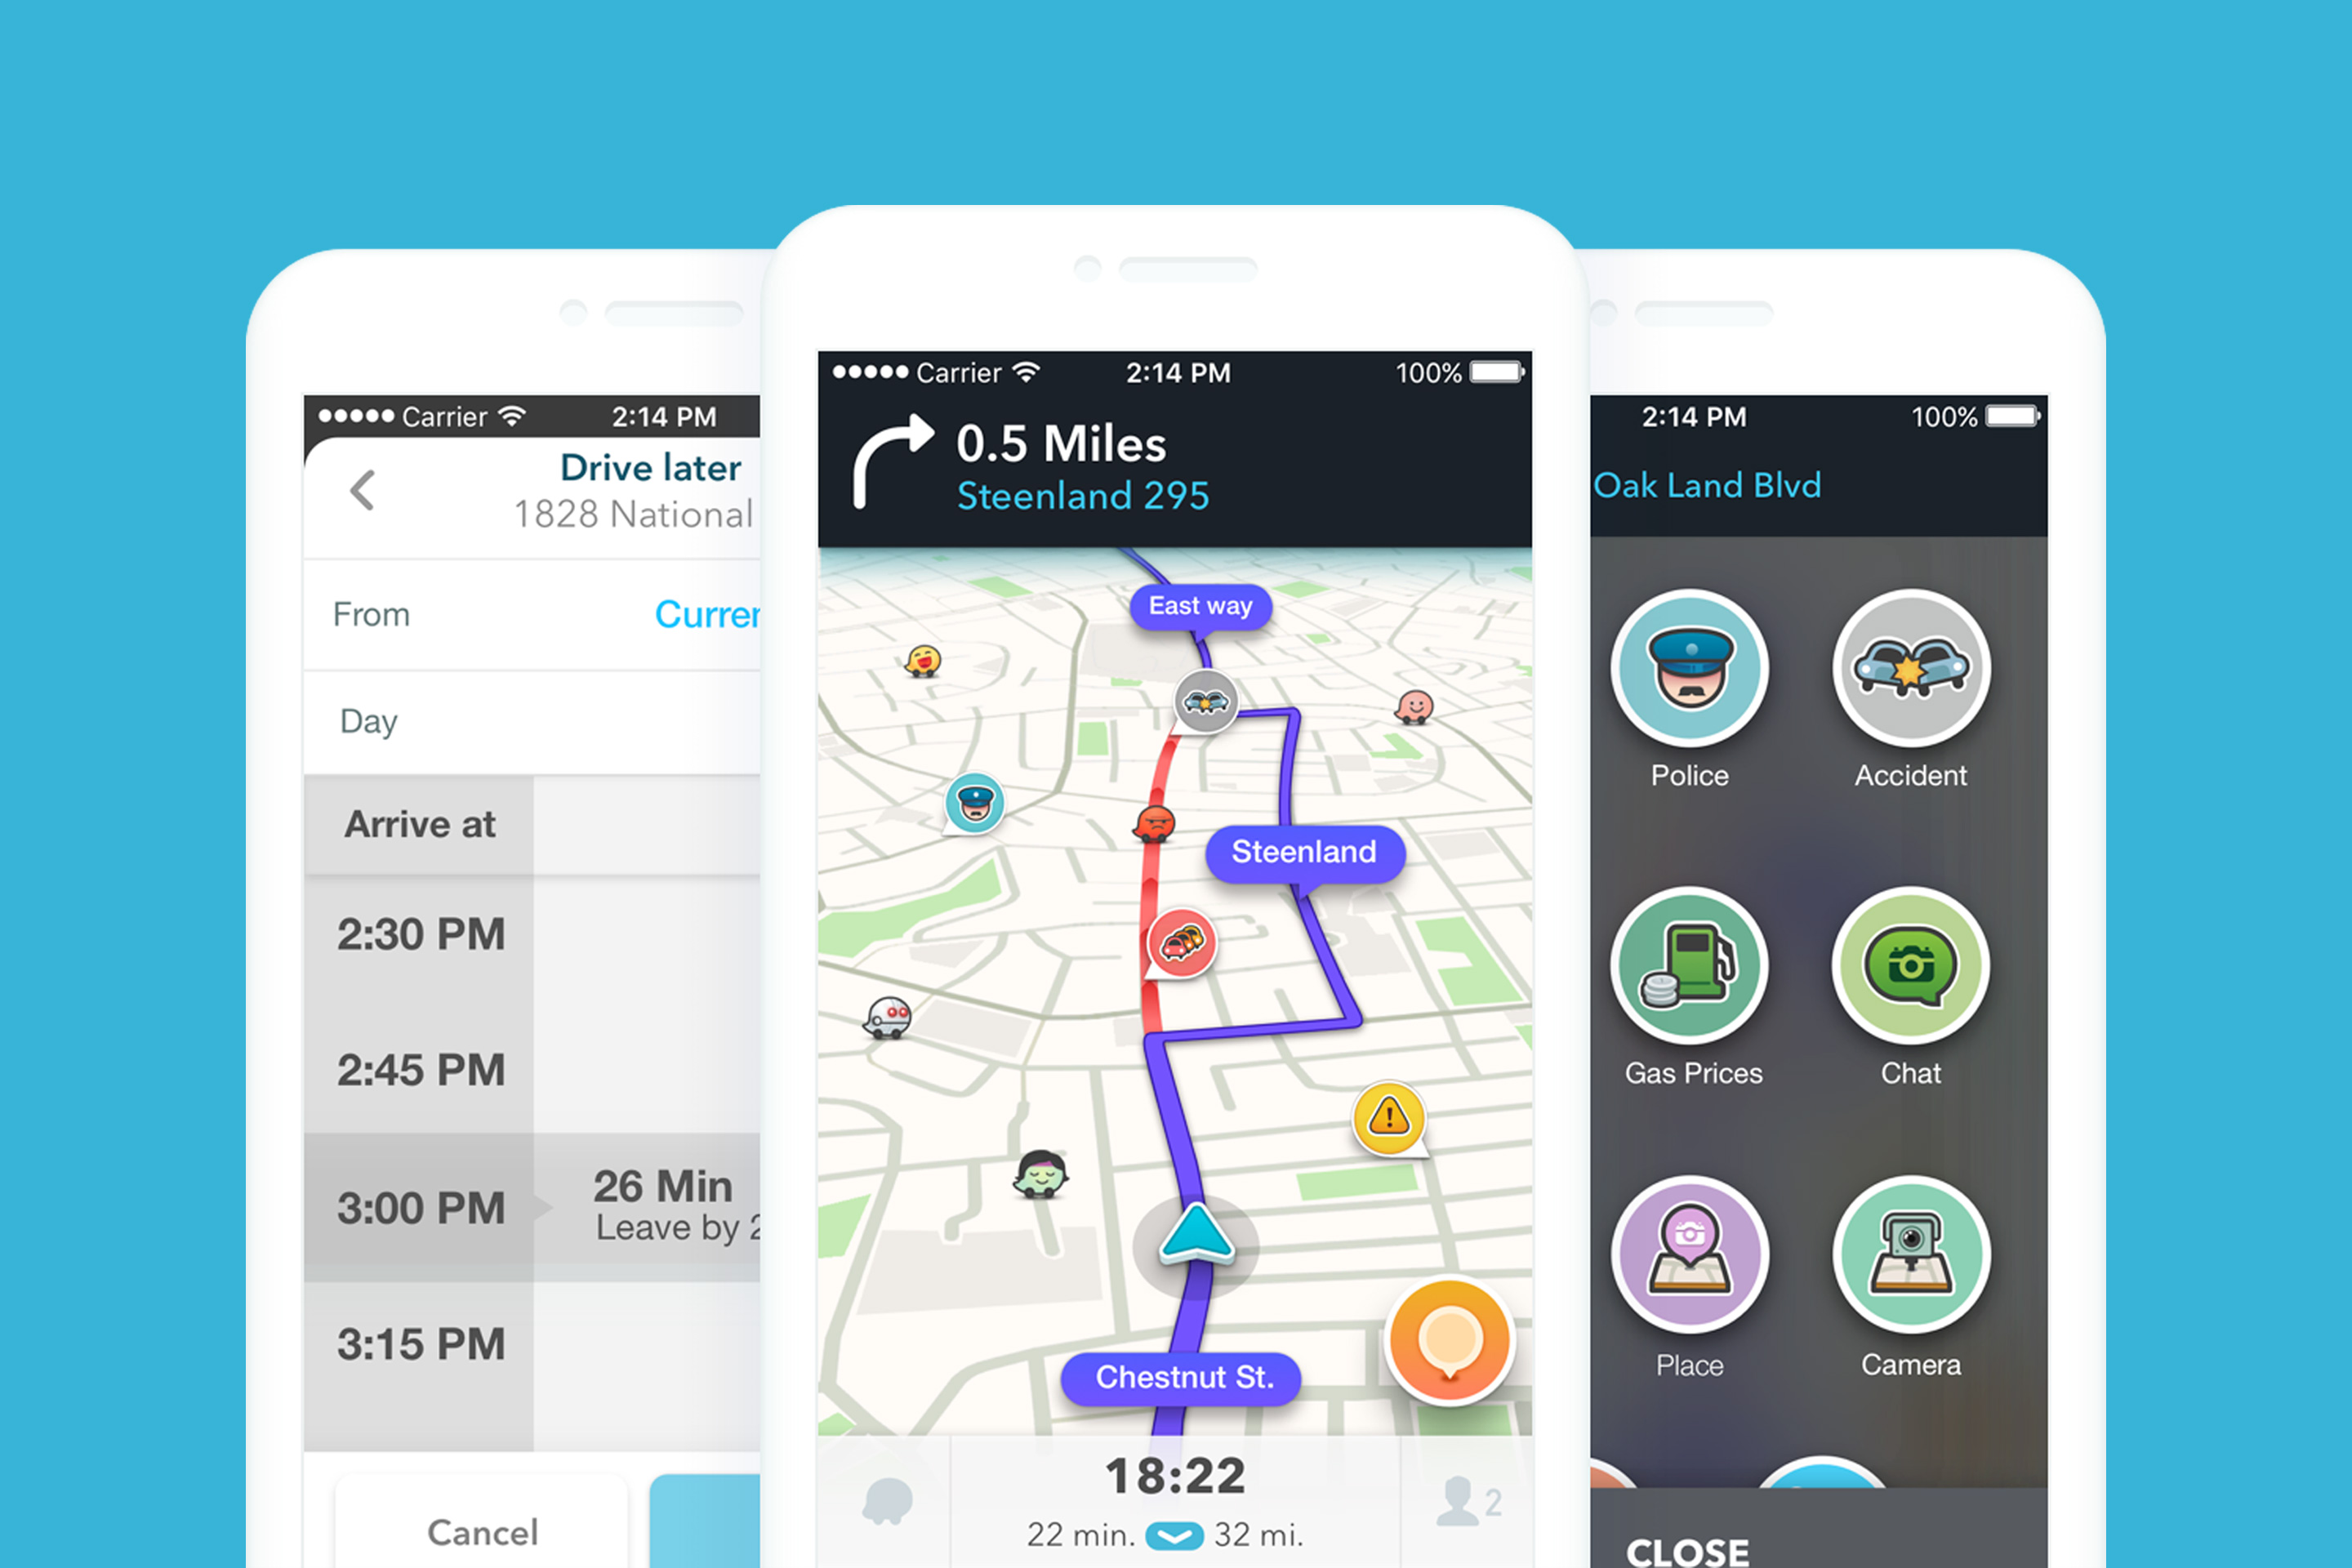 What Makes Waze the Best Reviewed Map App? An Army of Unpaid Human Editors  | Fortune